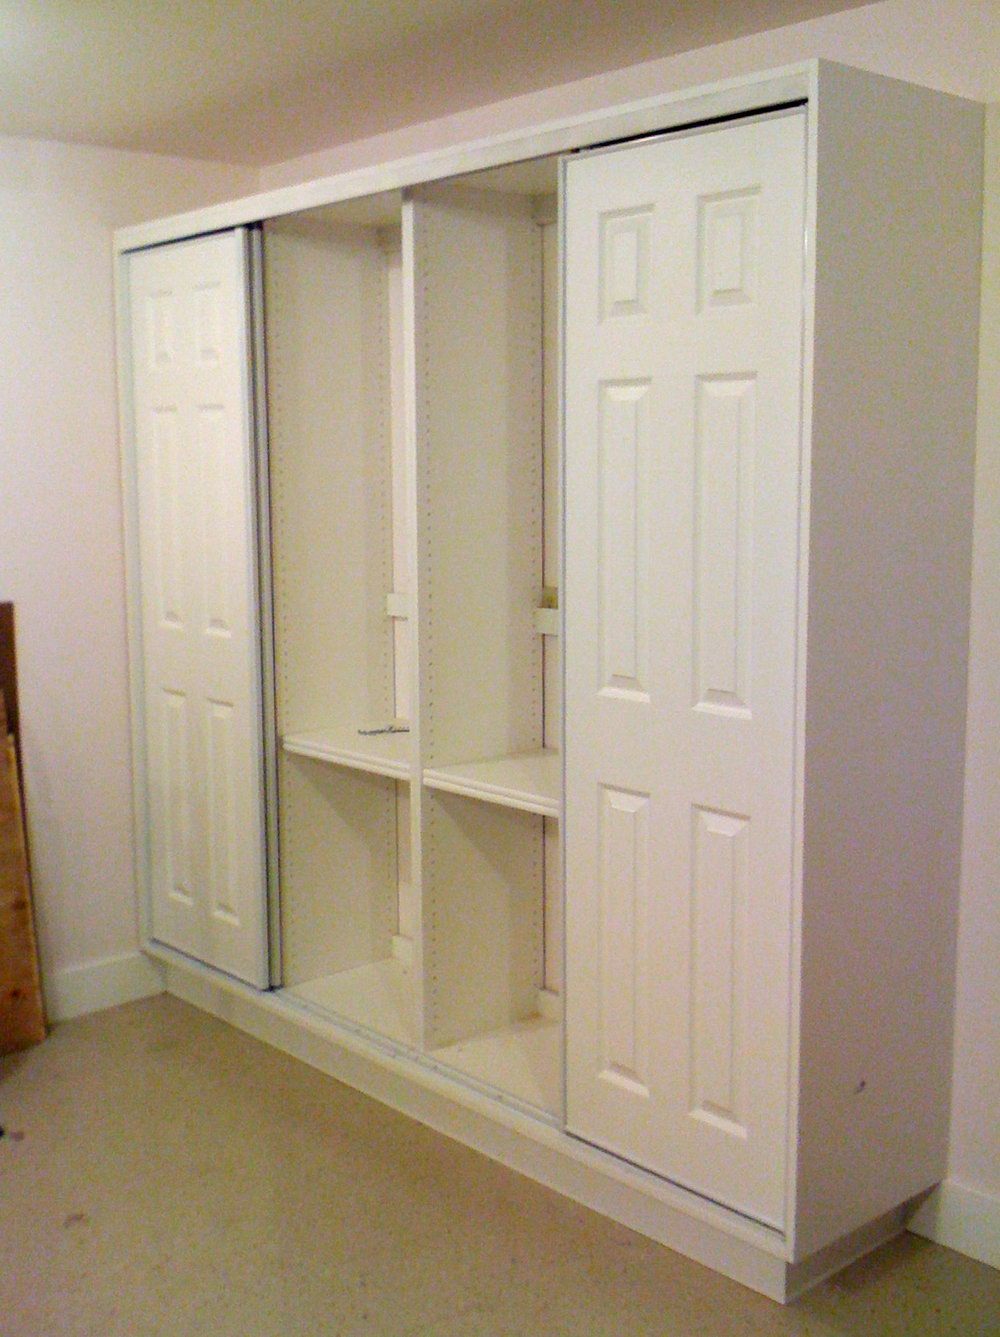 Used Storage Cabinets For Garage